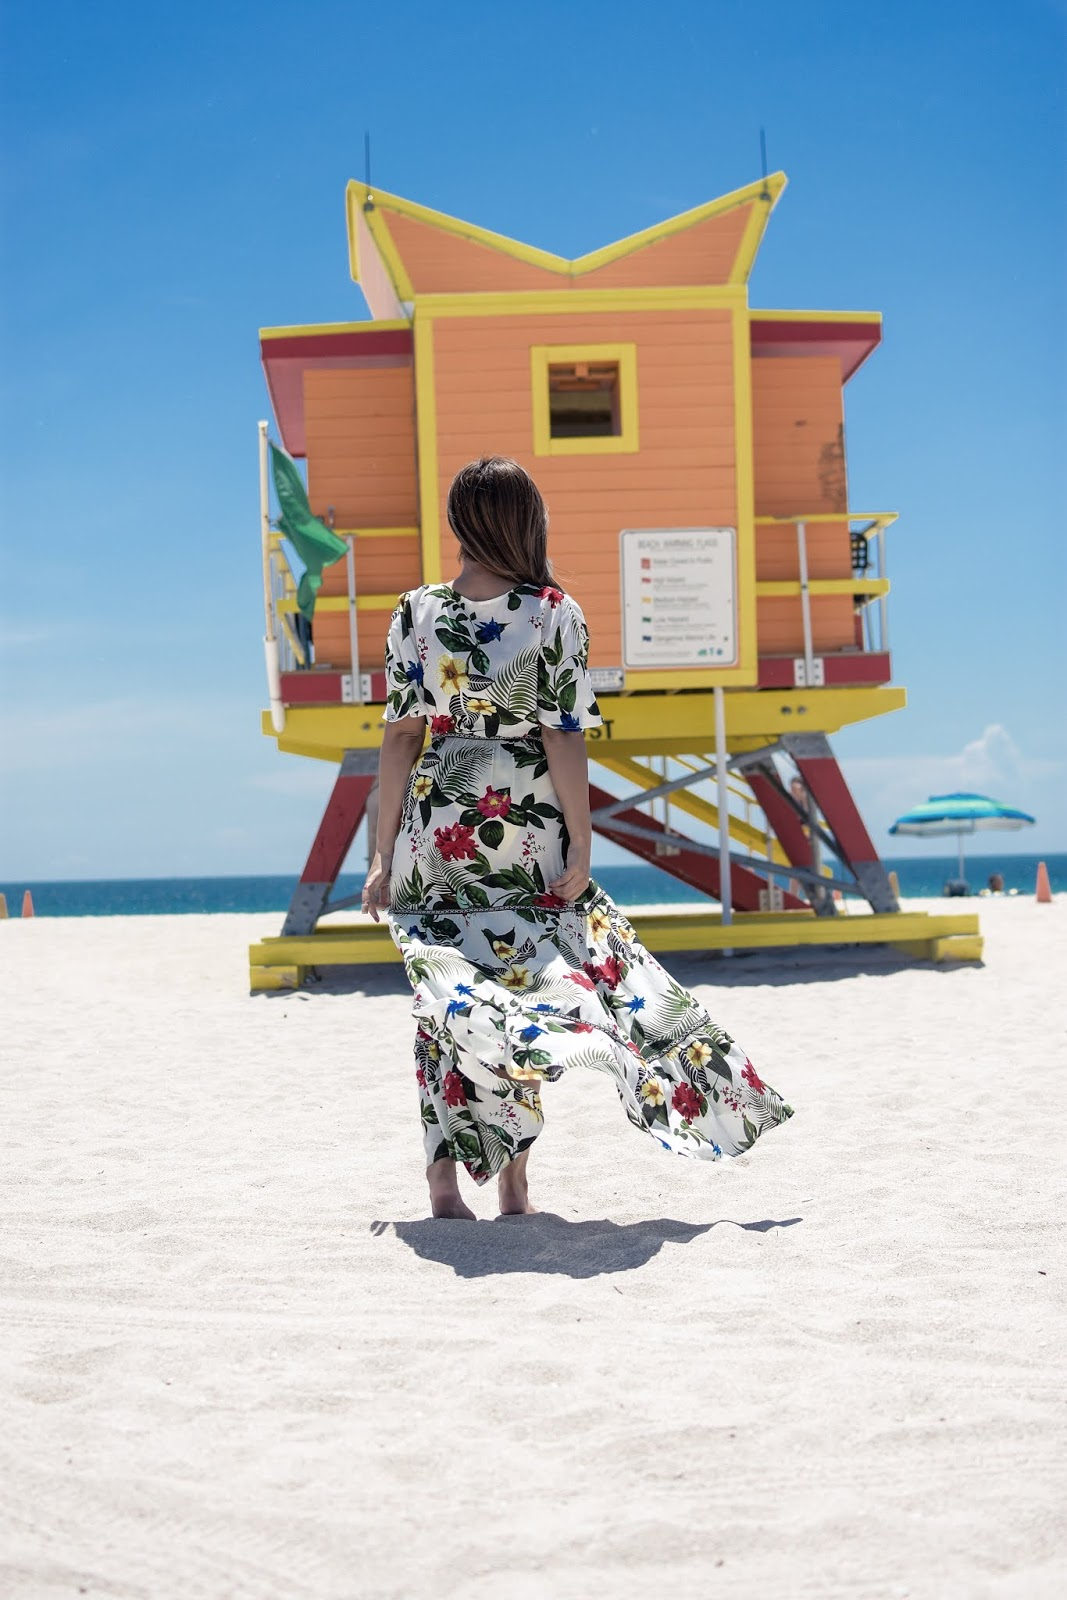 Tropical Dress-mariestilo-shein-southbeach-miami-caribe-cancun-fashionblogger-travelblogger-paraiso2018-miamiswimweek-itgirl-blogger-travel-